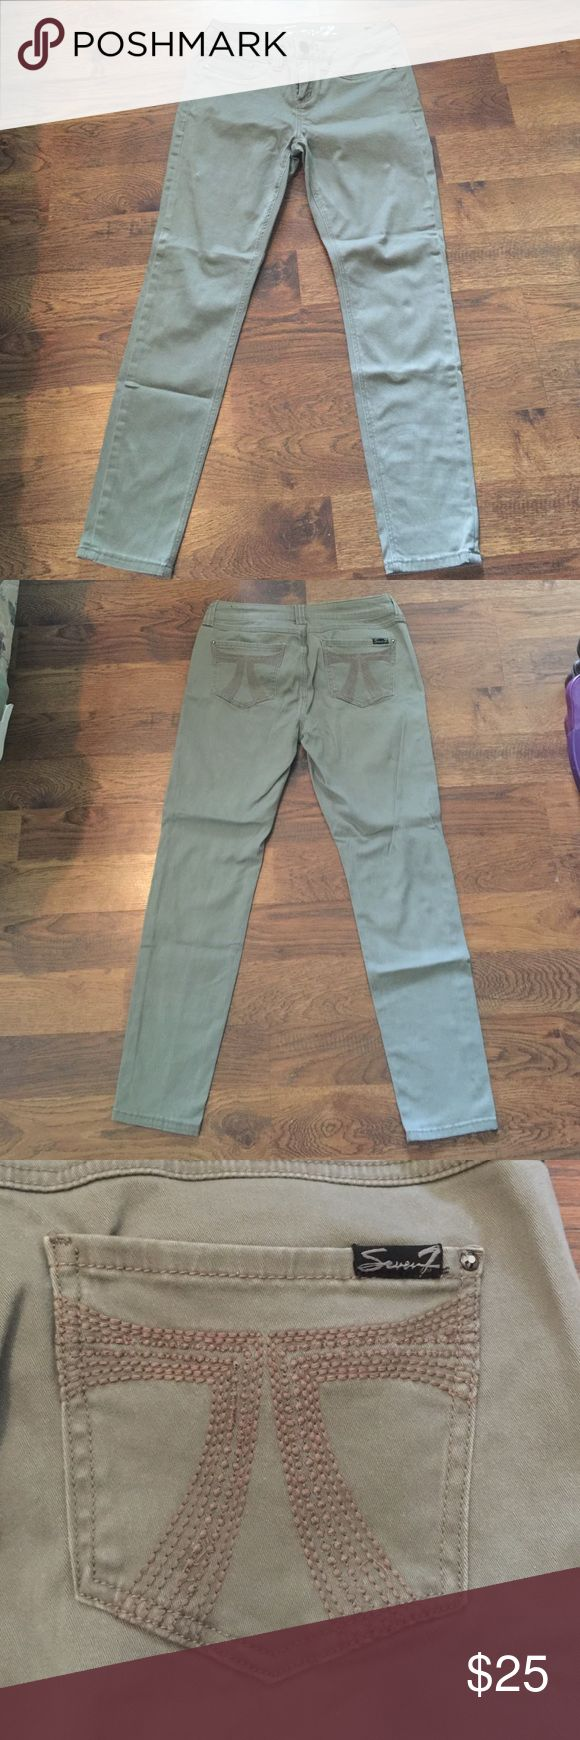 Seven7 tan skinny jeans Seven7 tan/khaki skinny jean. Fabric is somewhat stretchy. Worn 2-3 times. Great condition! Seven7 Jeans Skinny